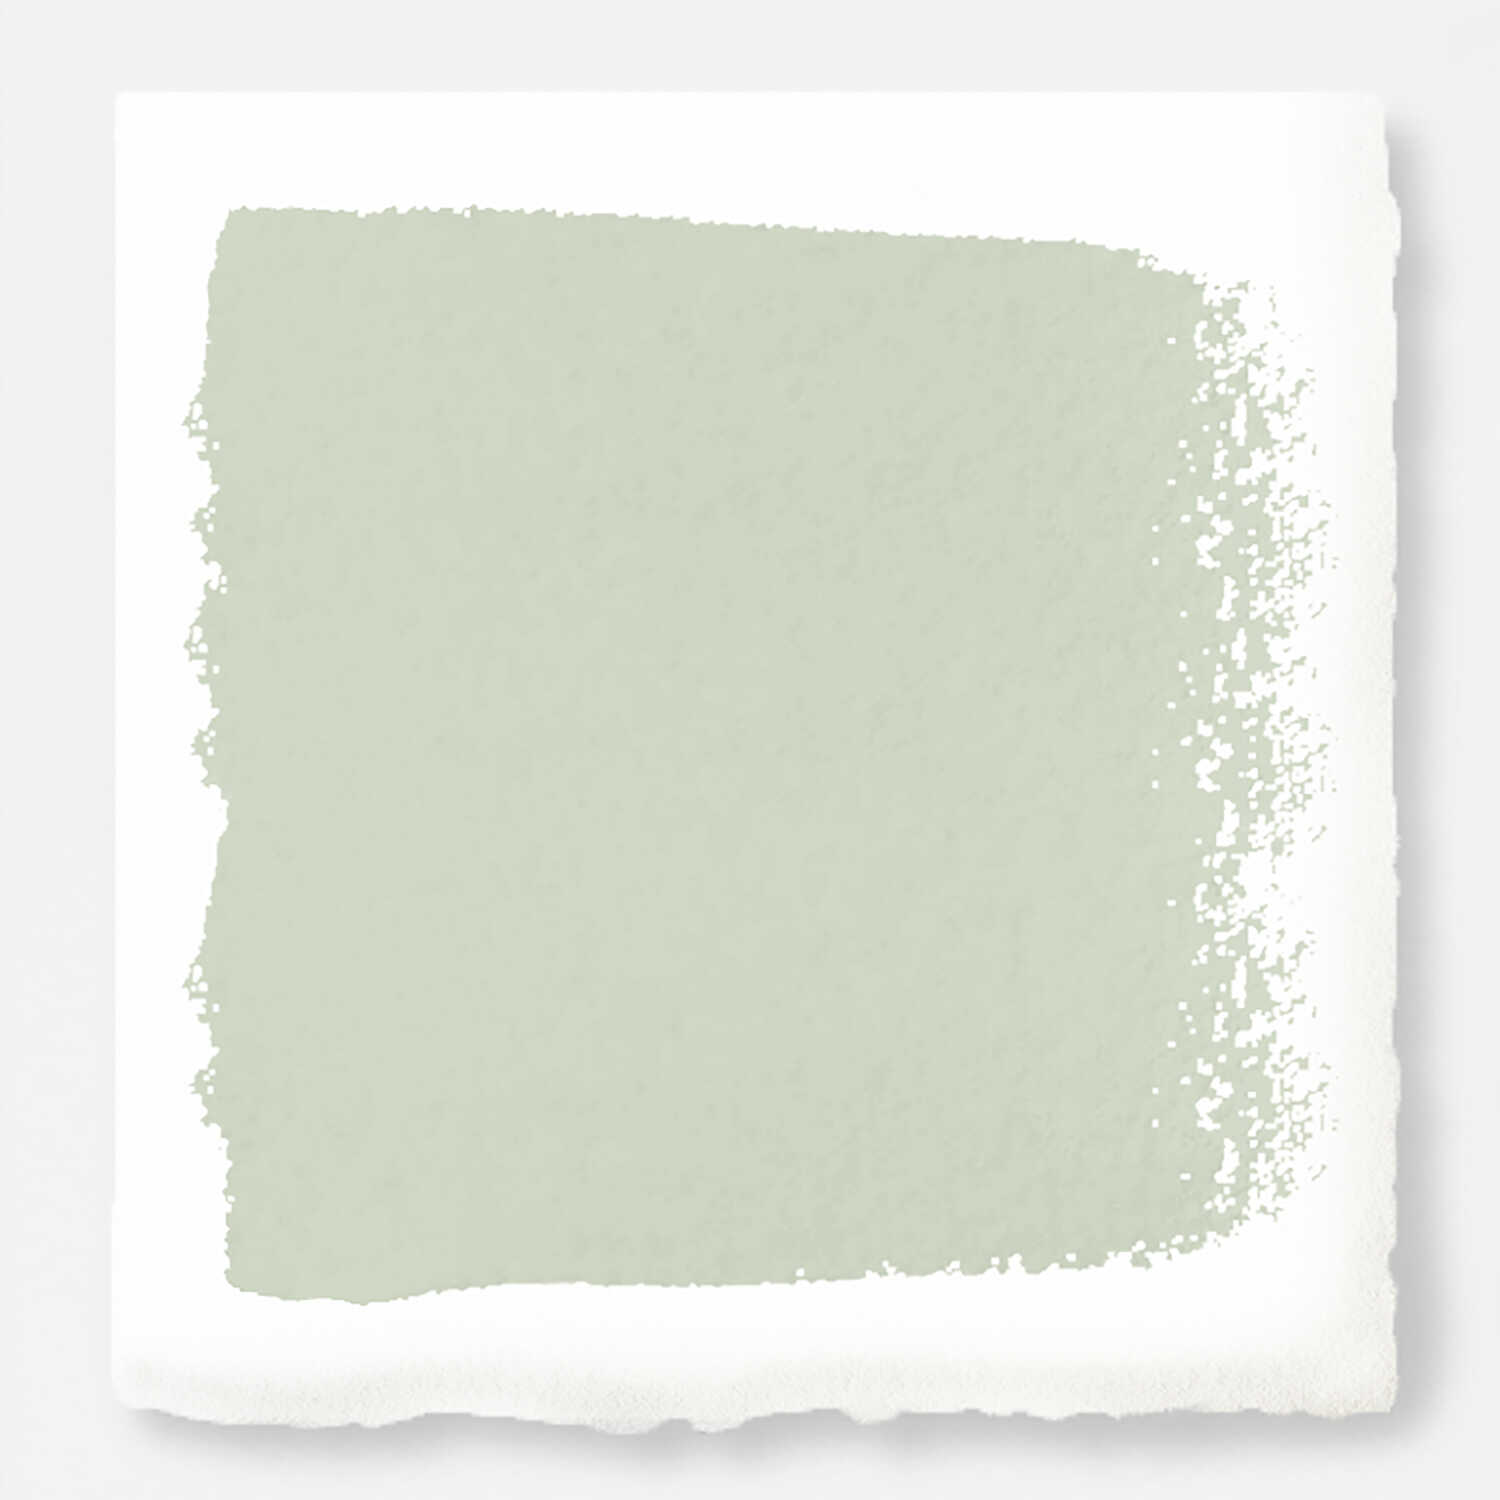 Magnolia Home  Satin  Piece Of Cake  Exterior Paint and Primer  1 gal.